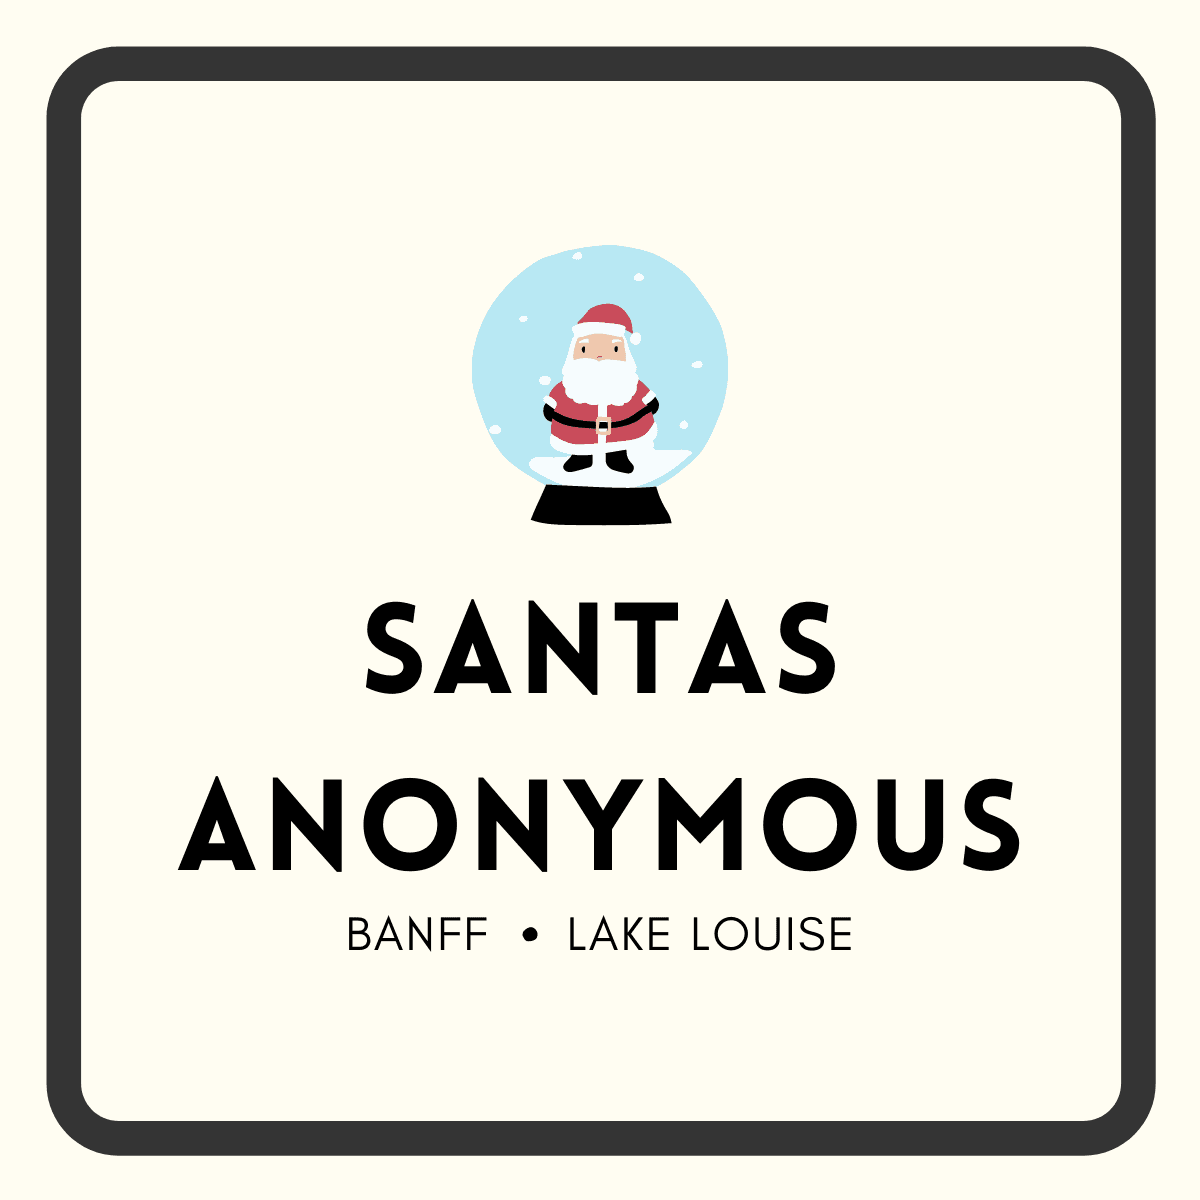 Santas logo with border